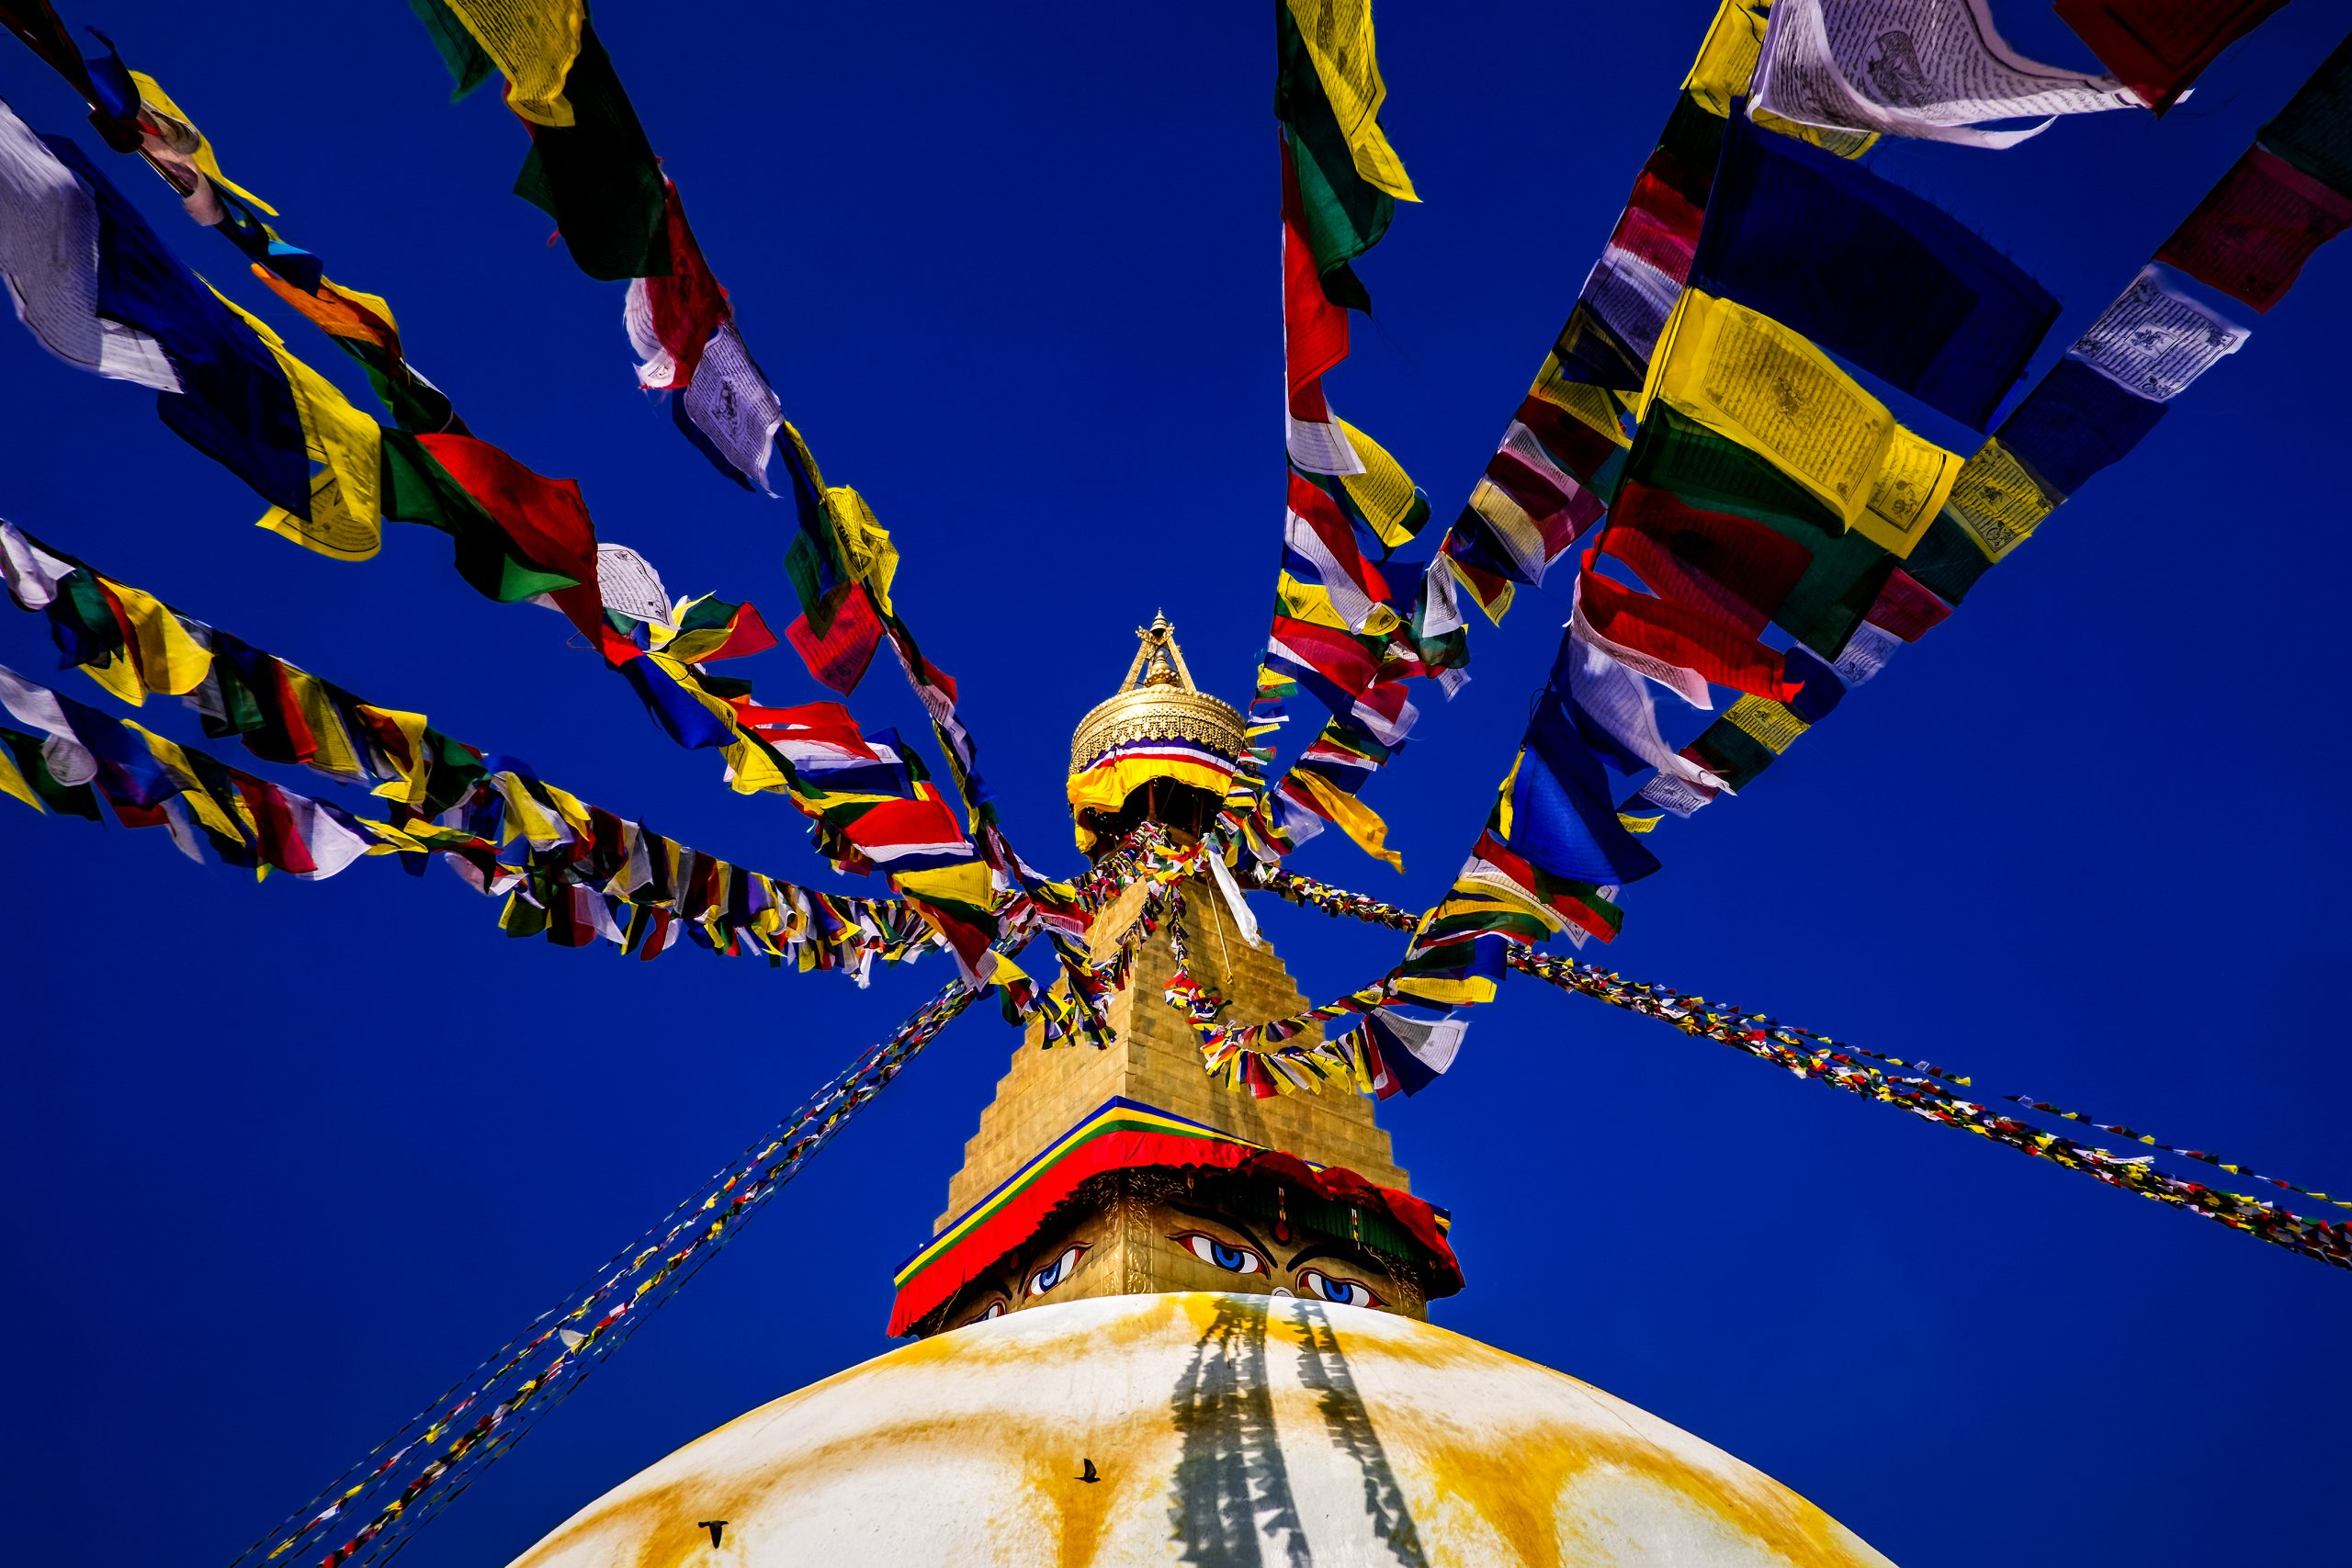 Traditional Nepalese flags tied to top of temple